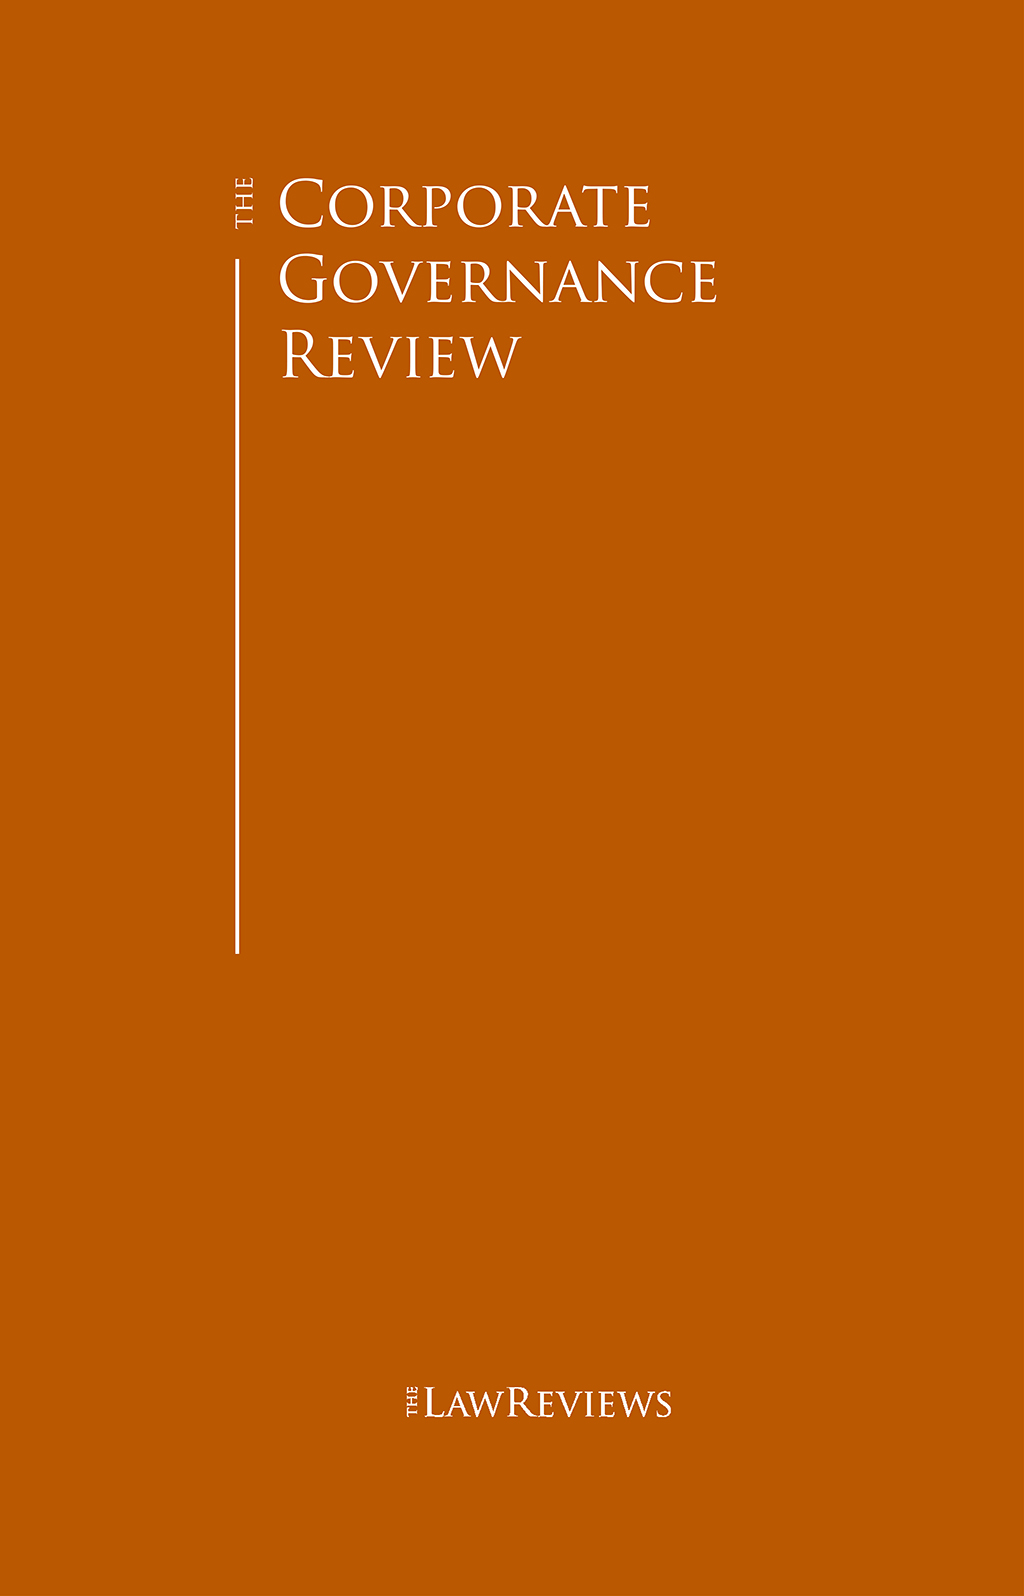 The Corporate Governance Review